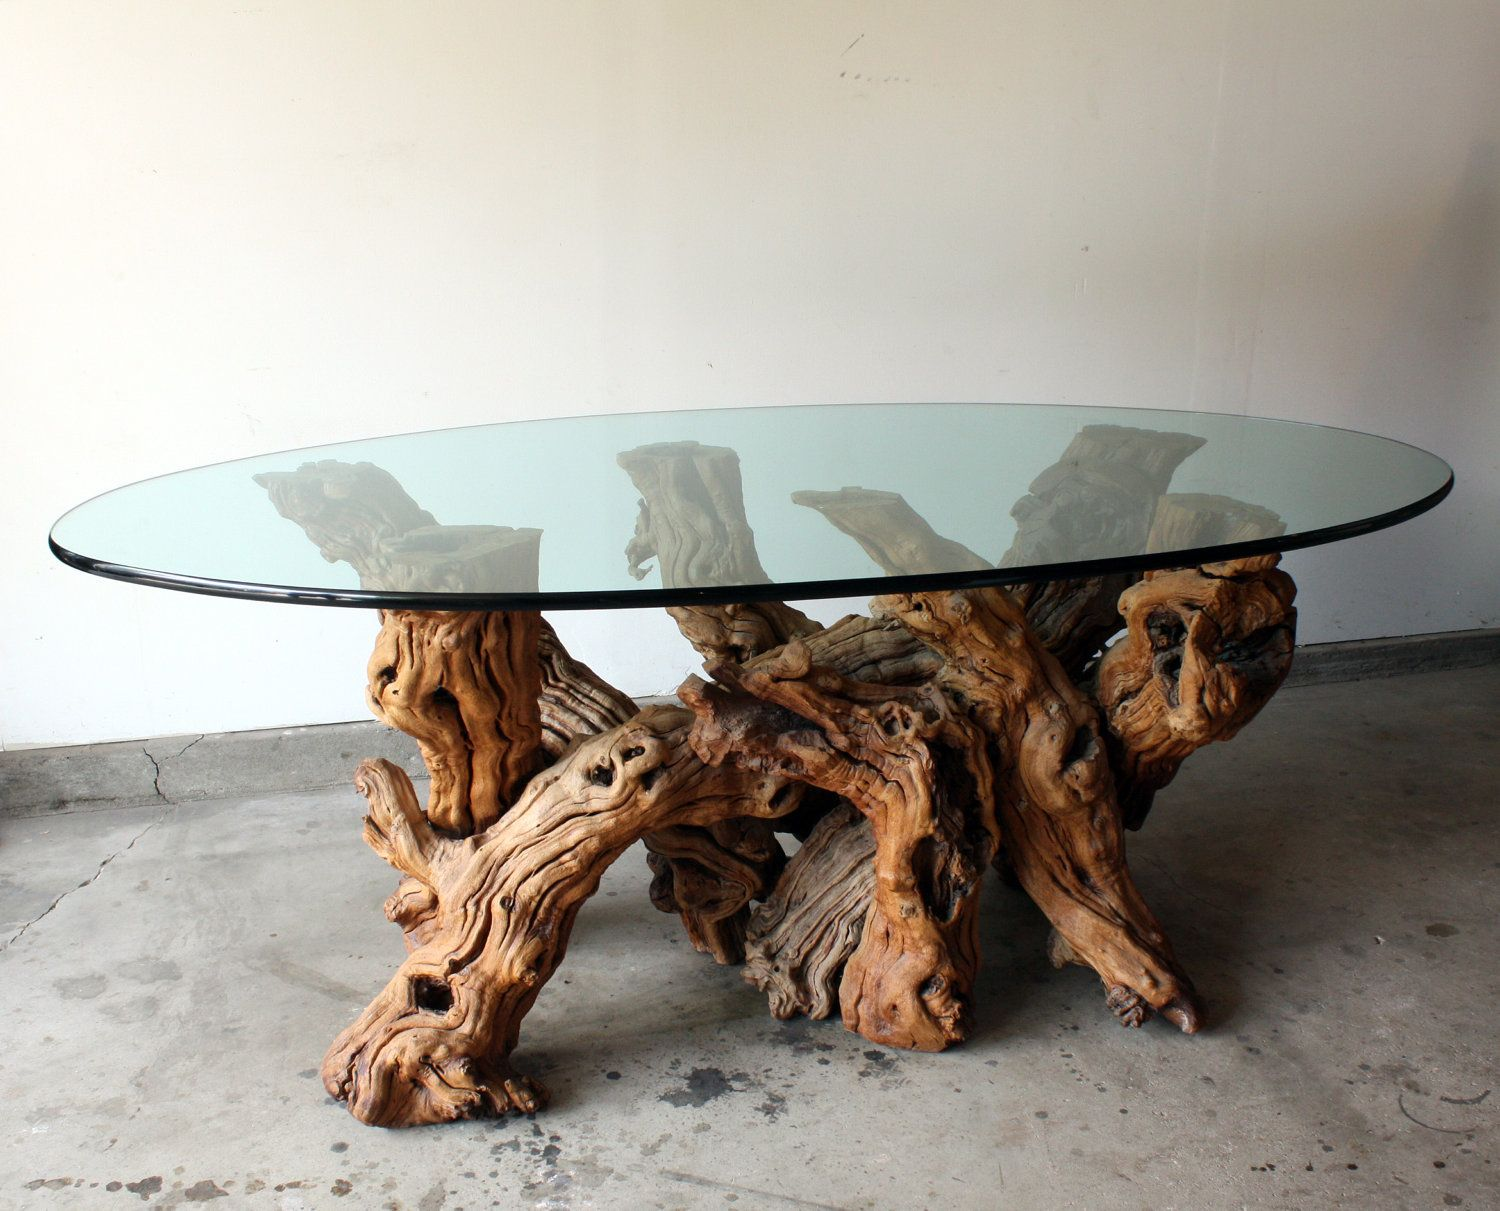 Oval glass dining table designs - Contemporary Oval Glass Dining Tables Collection Incredible Oval Glass Dining Table Inspiration With Trunk Frame For Nature Look Tradition